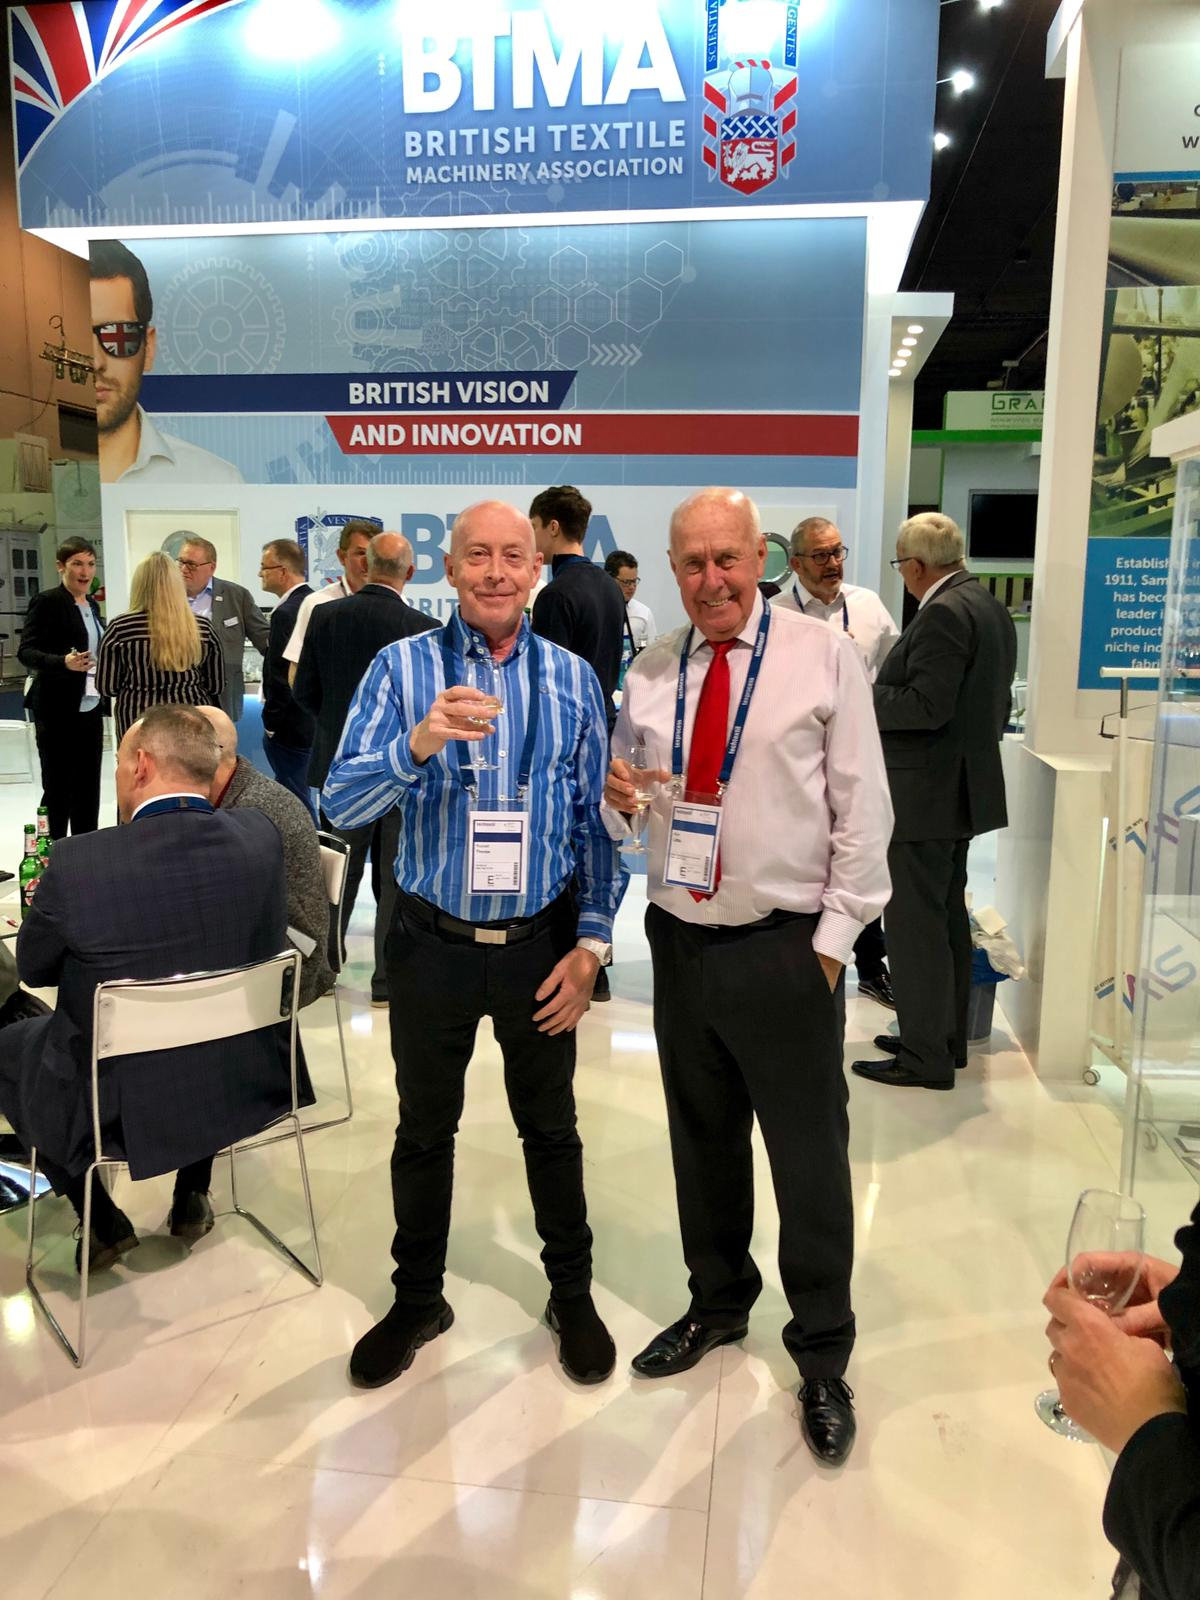 Celebrating the best of British Vision and Innovation at BTMA with Alan Little (Association Director)